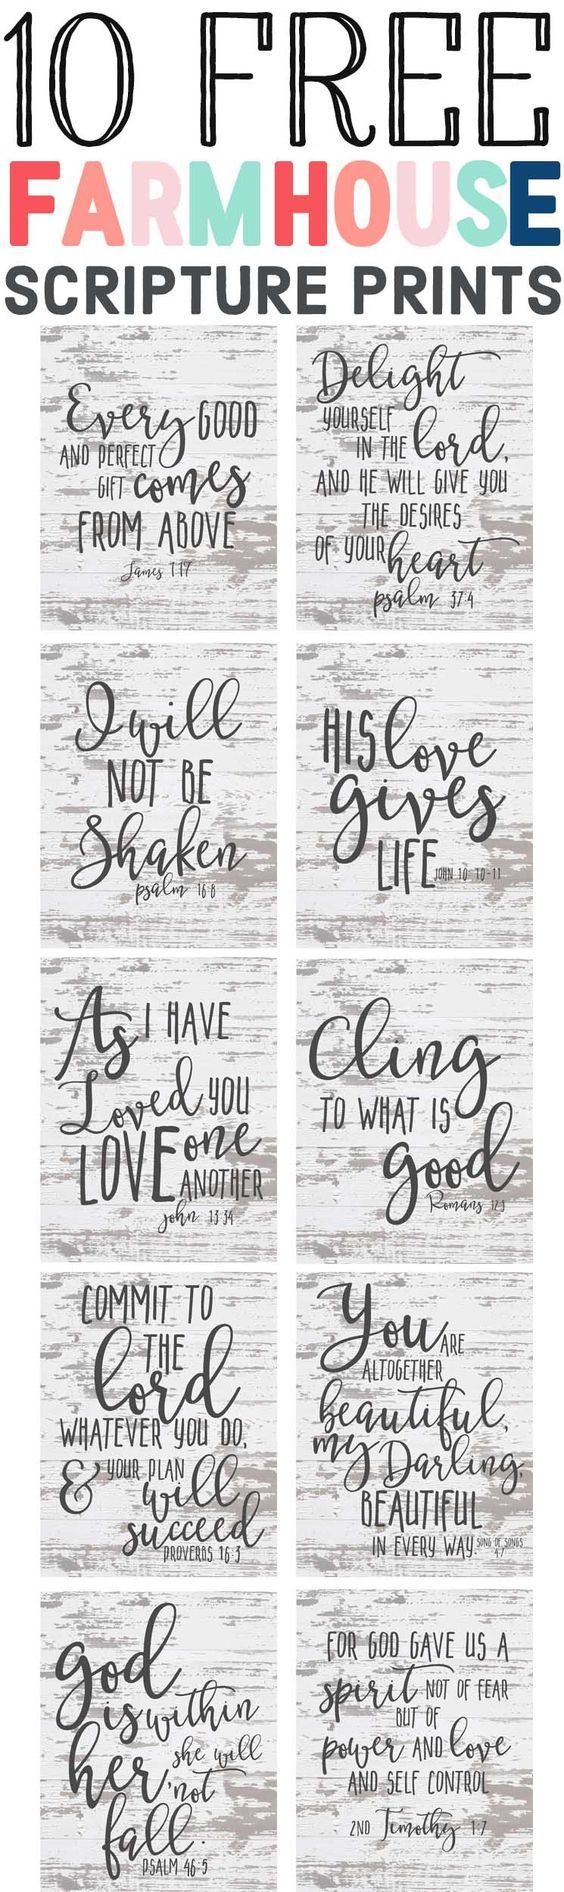 Free Farmhouse Scripture Printables-Upliflting bible and scripture printables-affordable farmhouse decor ideas-www.themountainviewcottage.net.jpg